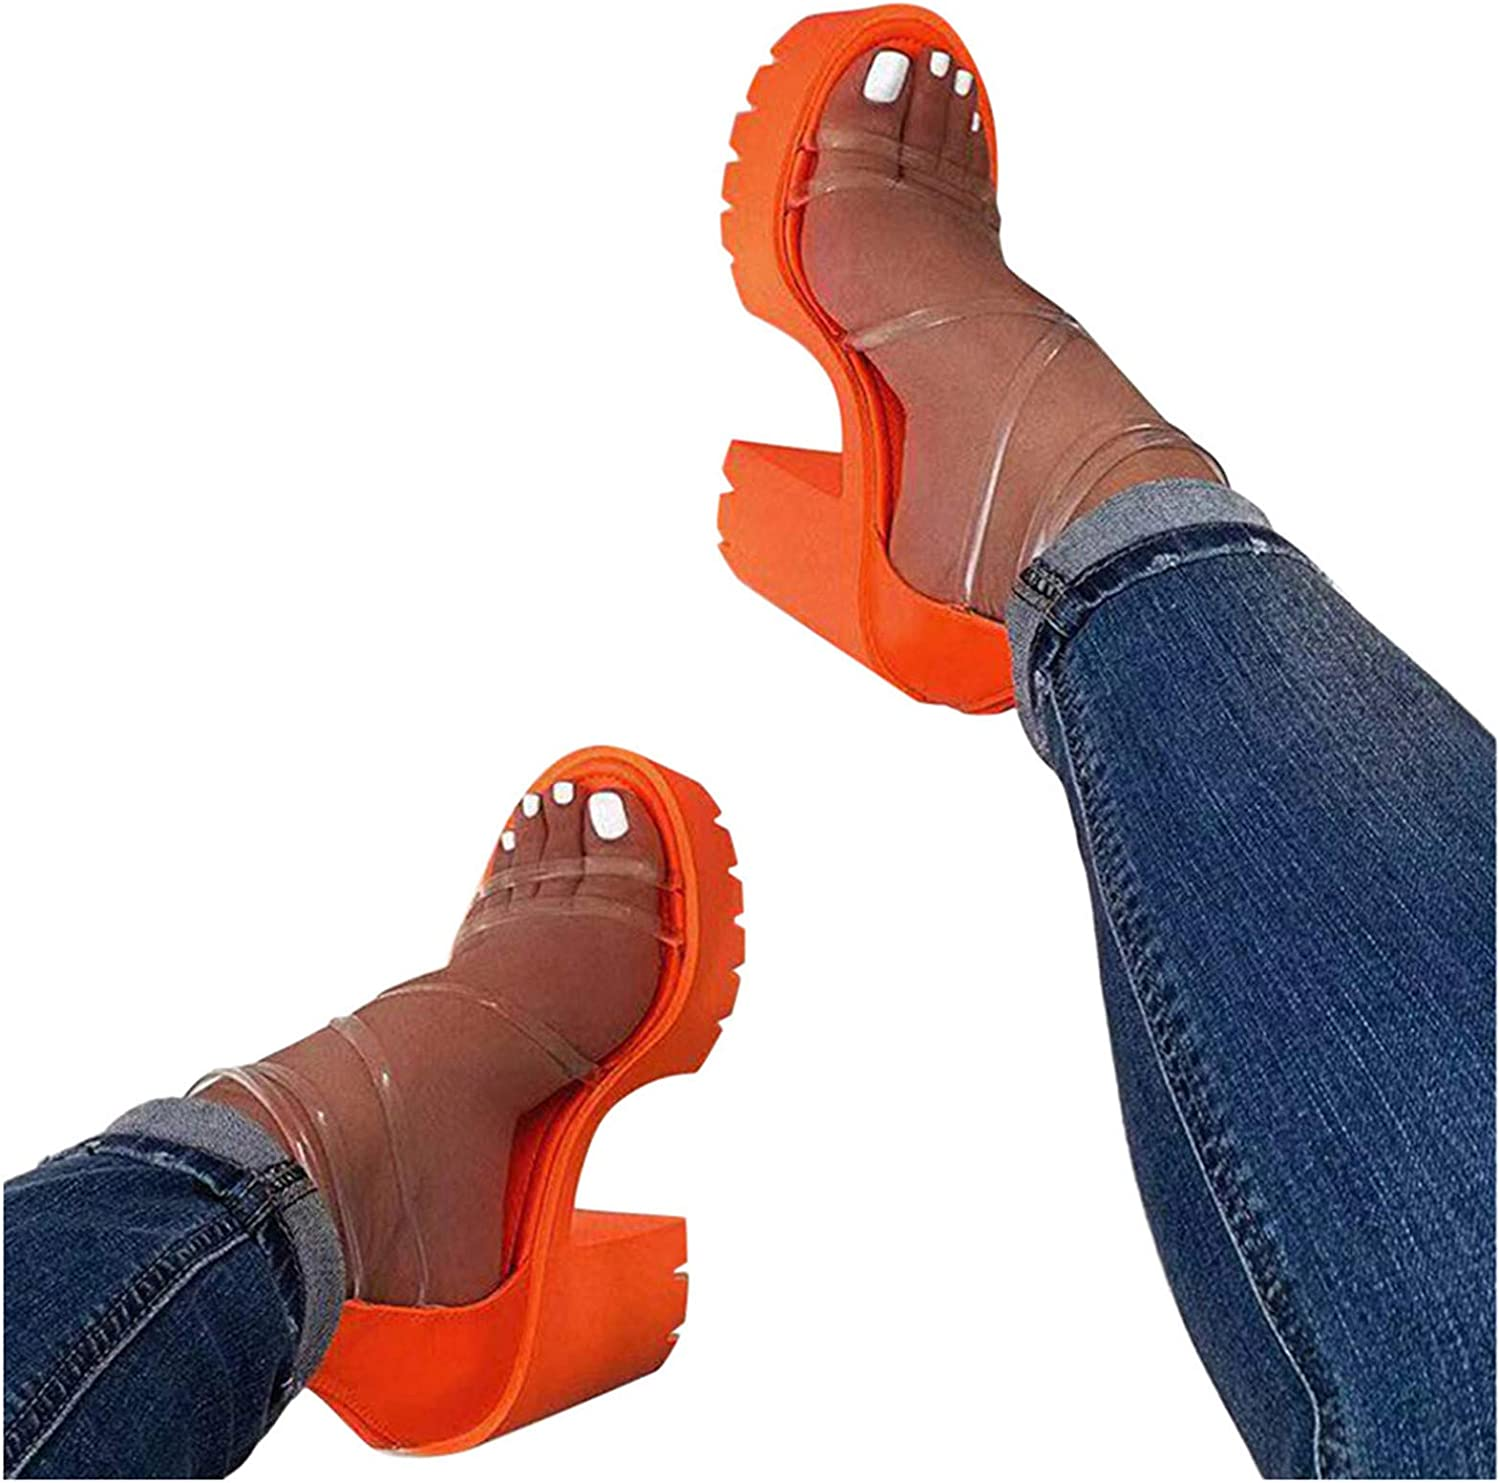 Olymmont Women's Sandals Casual Summer Clear Ankle Strappy Zipper High Heels Open Toe Chunky Heels Outdoor Sexy Platform Sandals (Orange, 9)